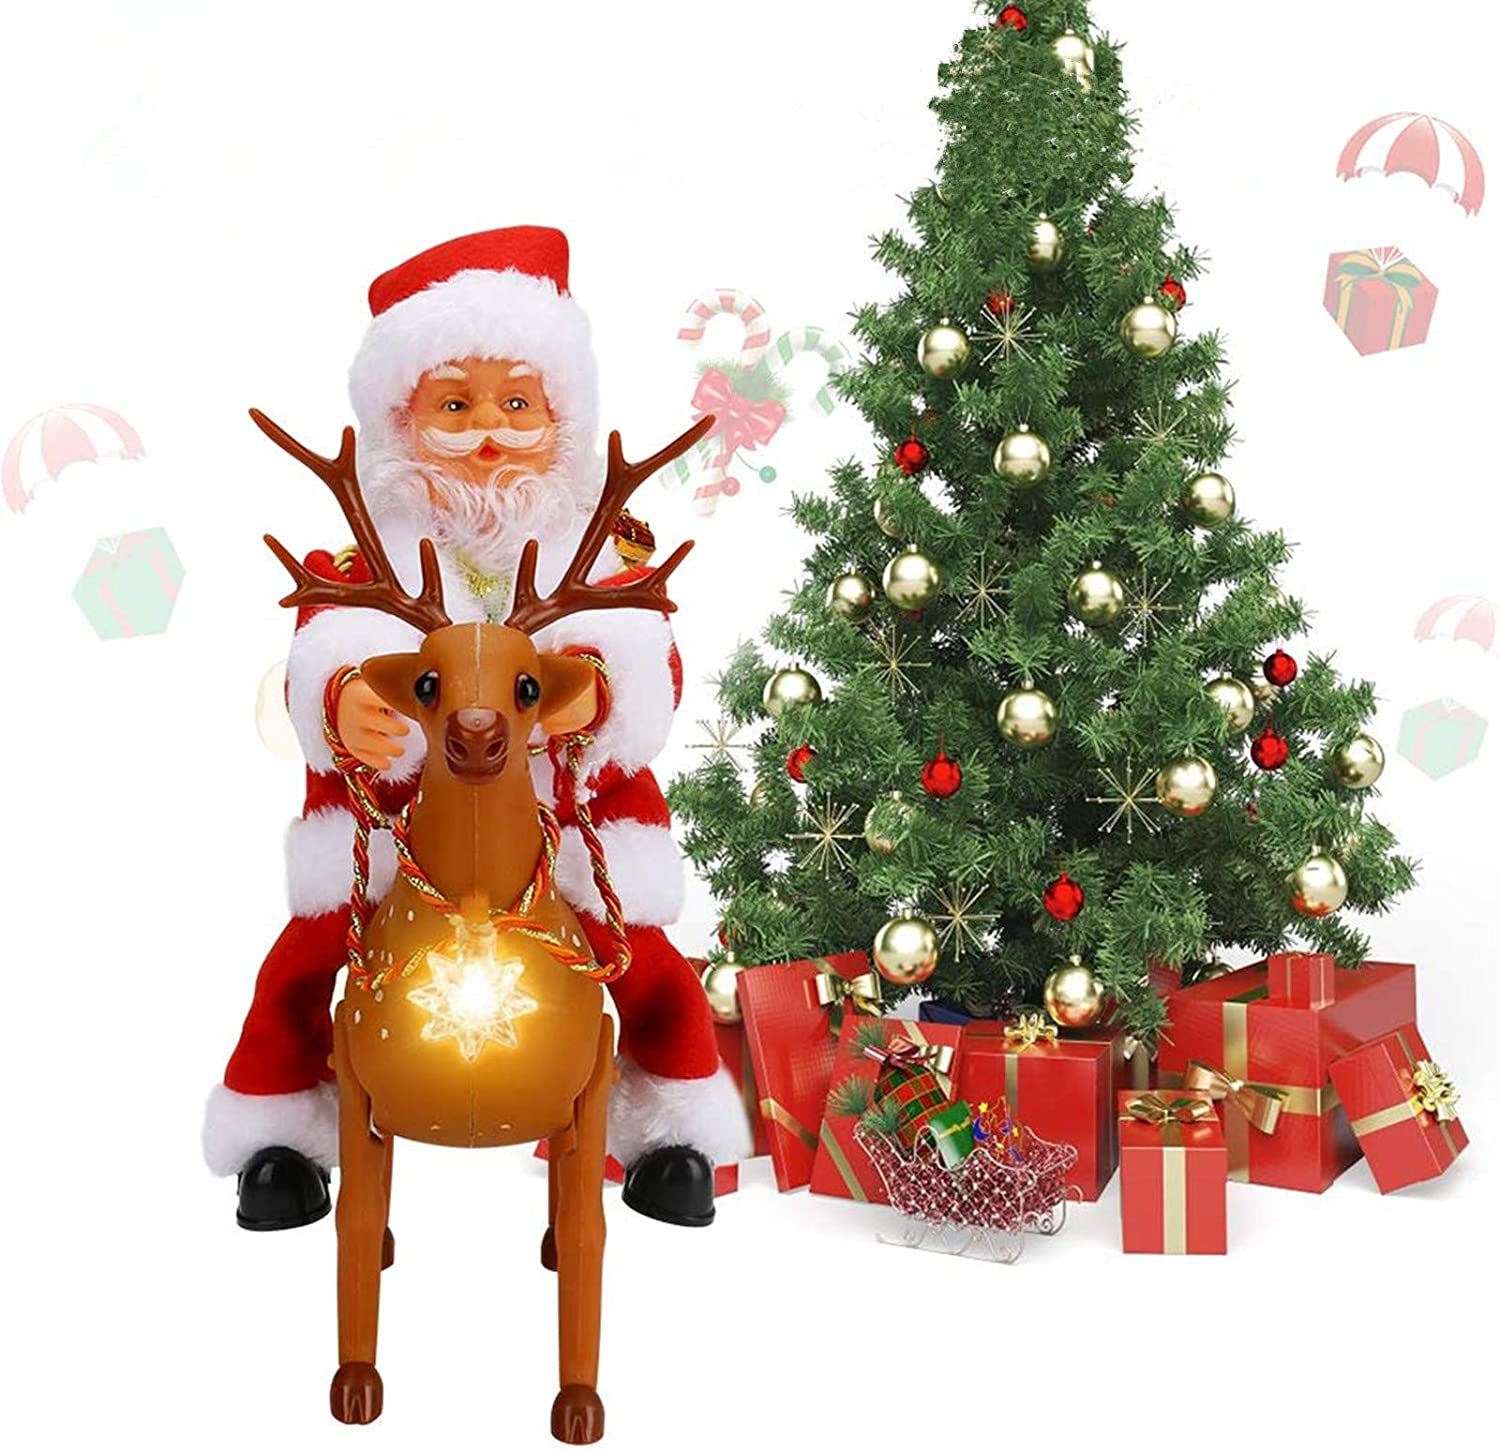 Globalstore Electric Christmas Santa Claus Riding Elk Reindeer Christmas Ornament, Table Fireplace Decor New Year Party Home Holiday Decoration, Best Creative Doll Musical Toy Gift for Kids & Adults